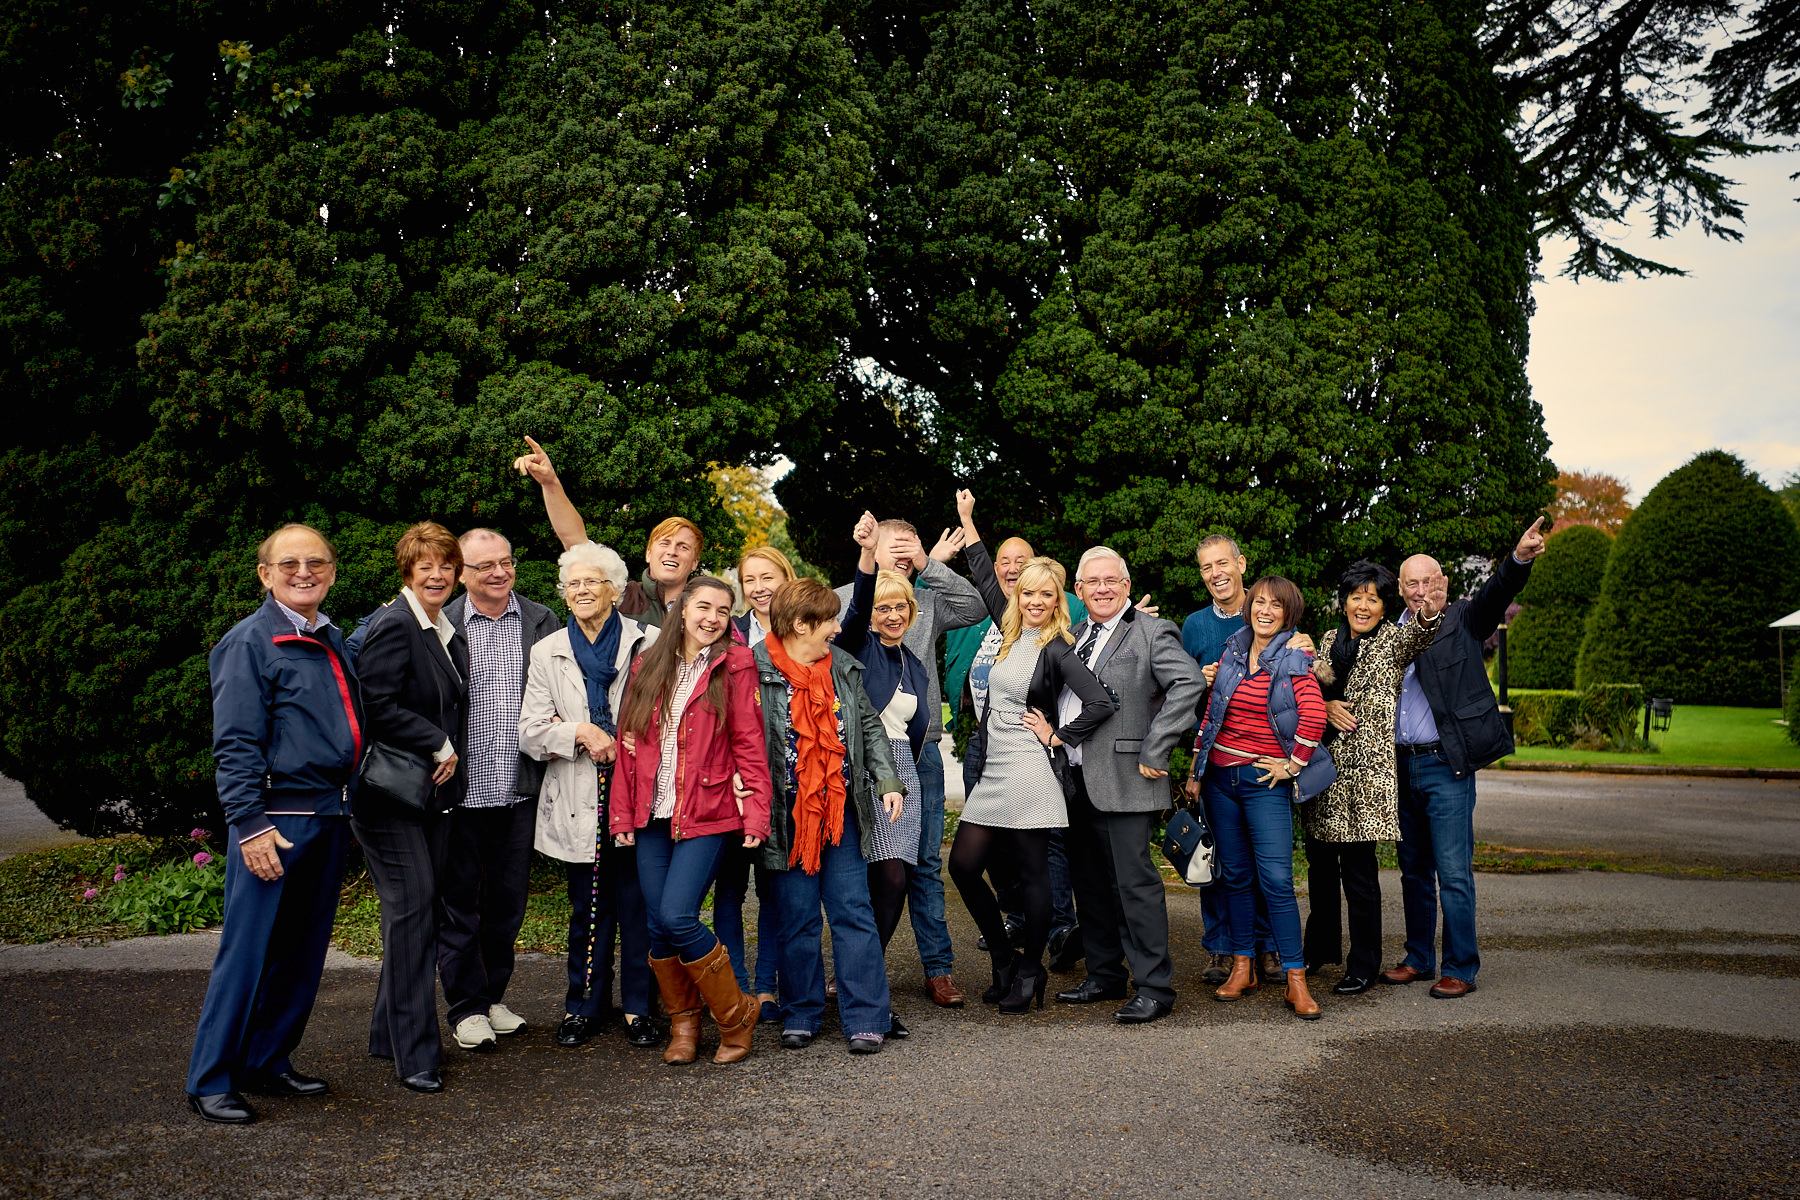 Group Photo by trees in Maenan Abbey car park